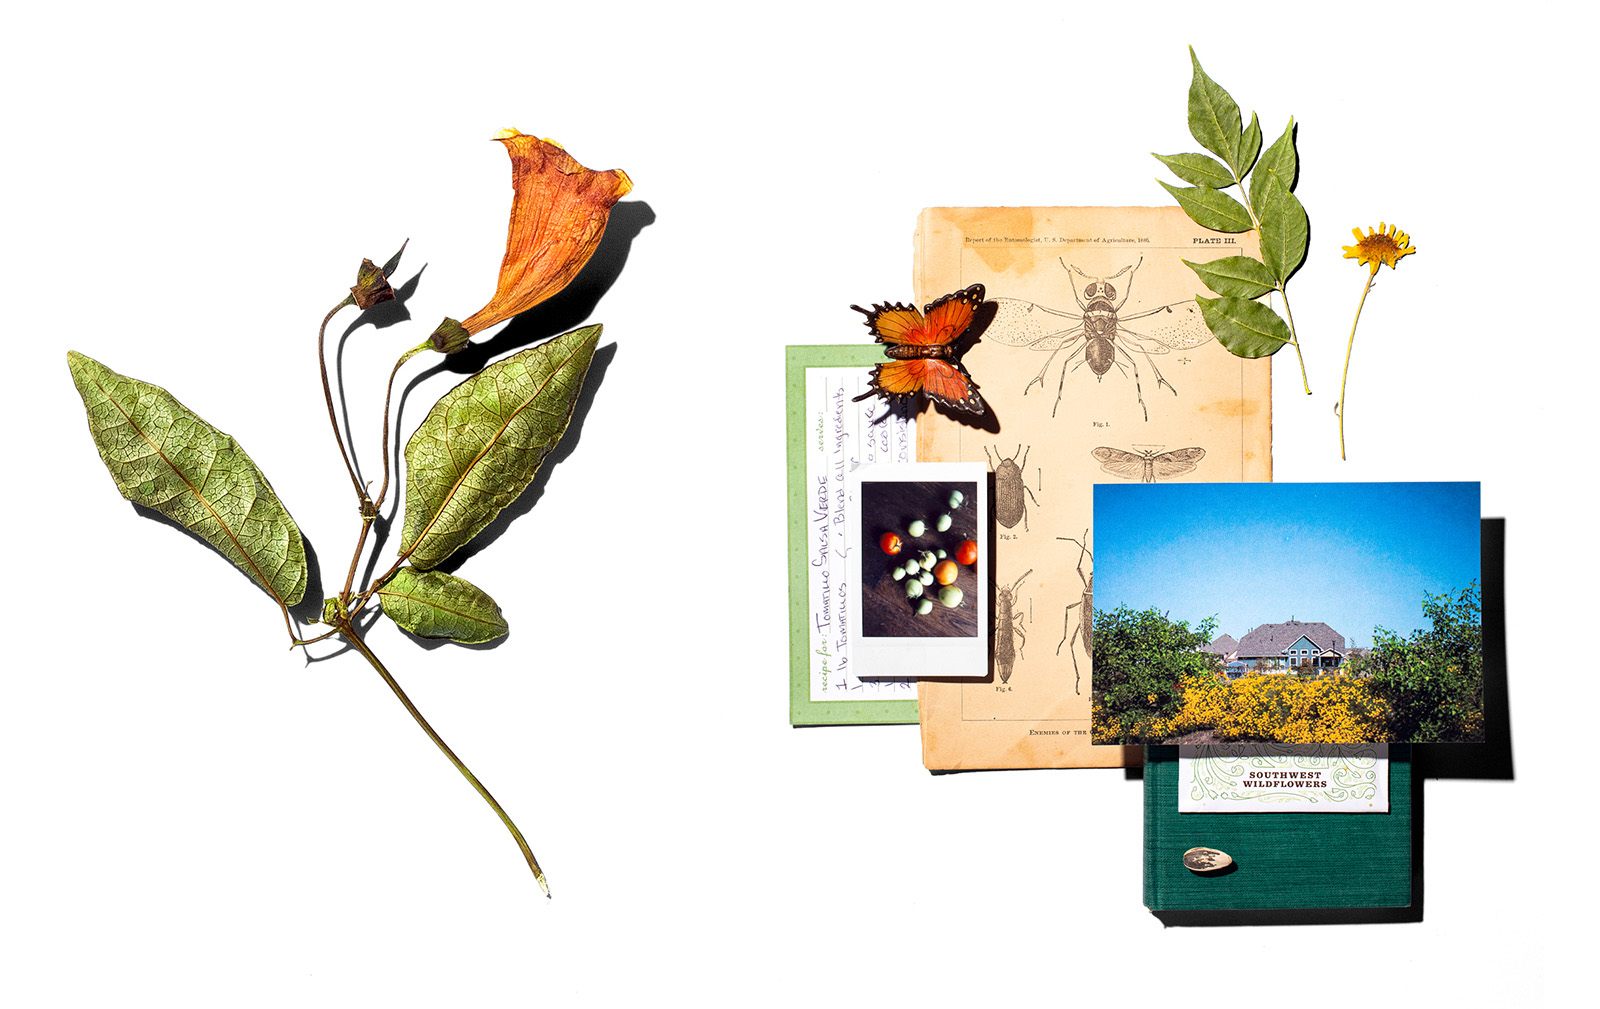 A loose collage of objects including a flower, a butterfly, dried leaves and a photograph of a home at The Crossvine.